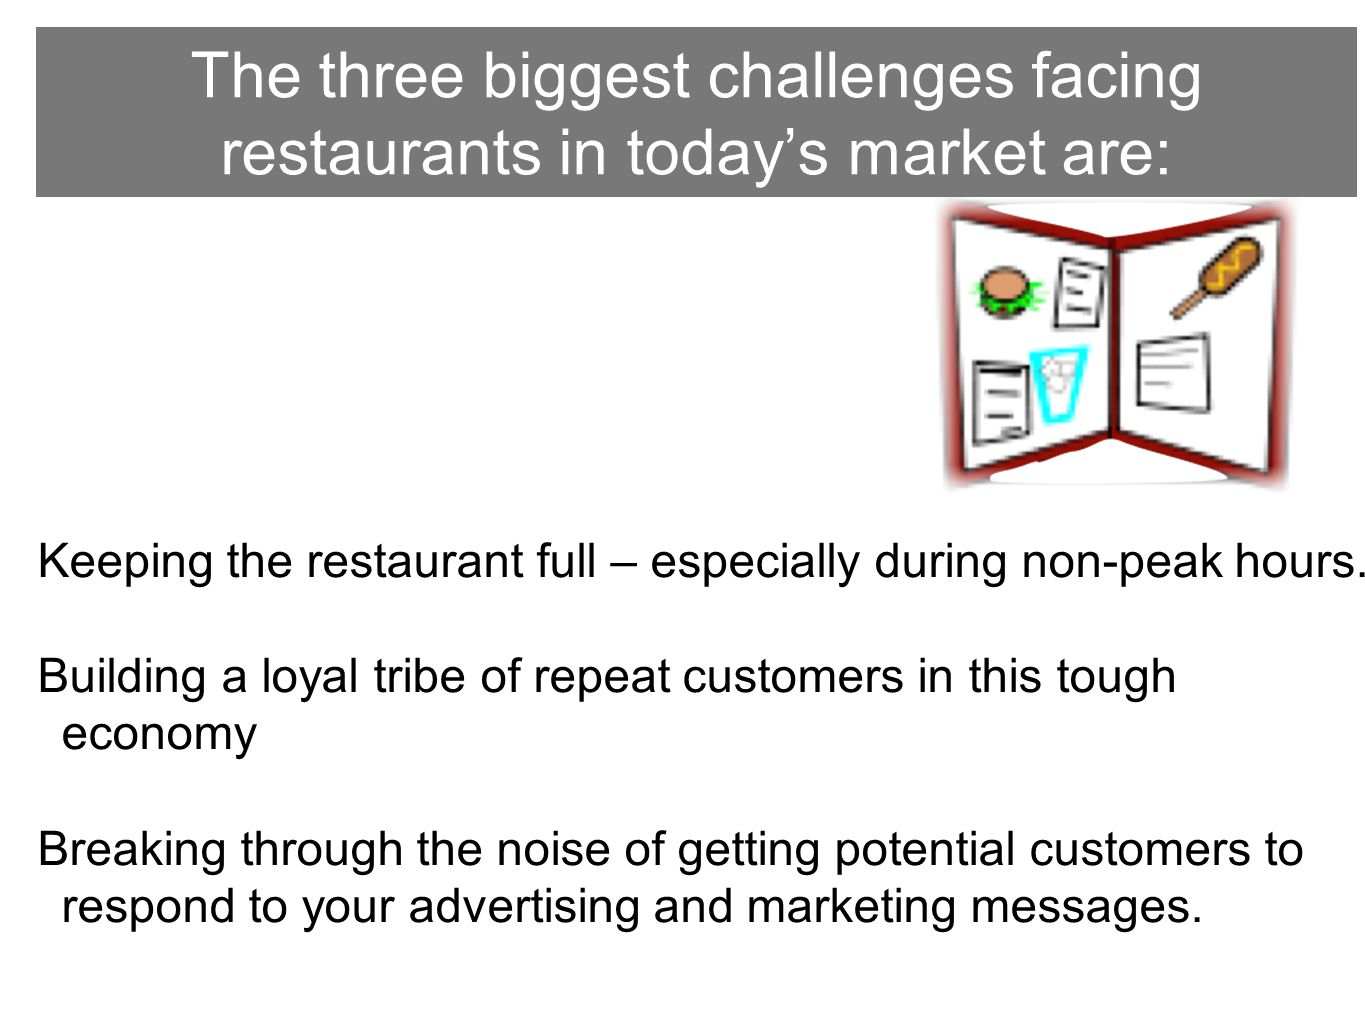 The three biggest challenges facing restaurants in today's market are: Keeping the restaurant full – especially during non-peak hours.